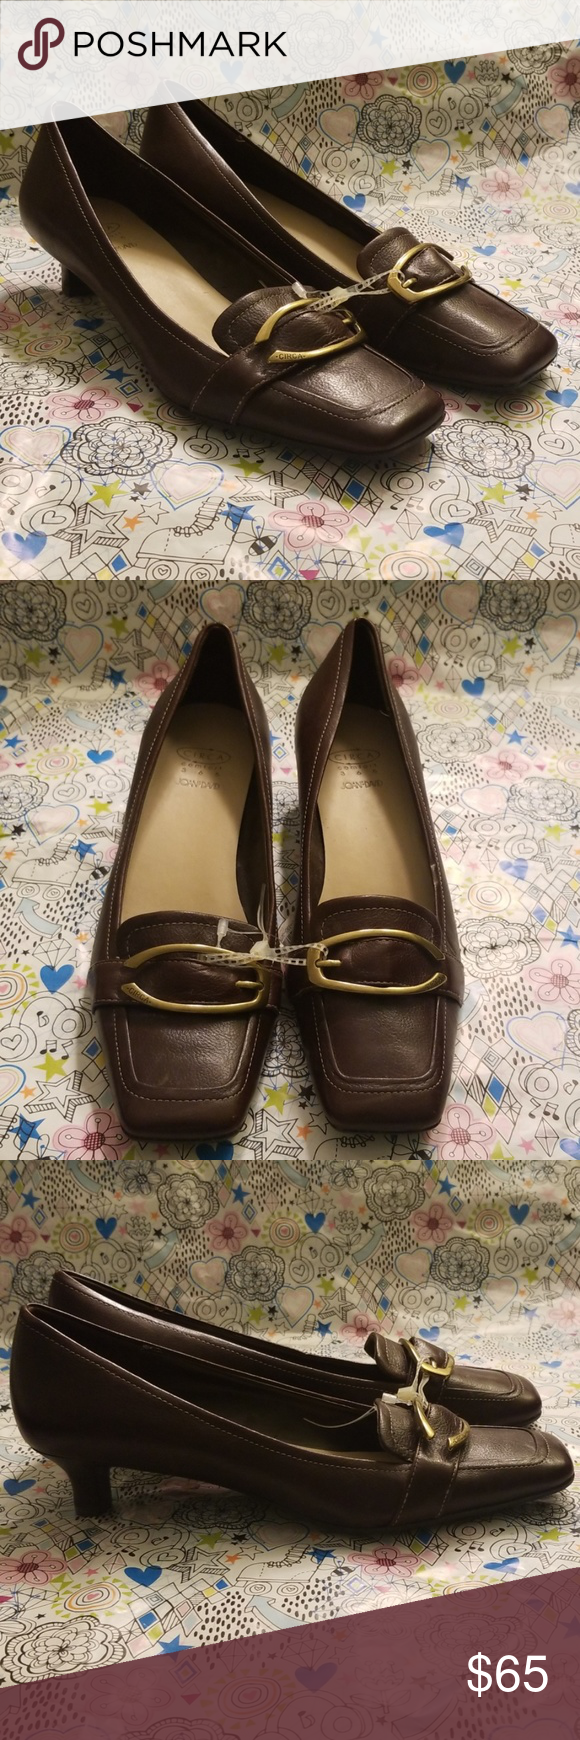 current shoe trend AUTH JOAN amp; DAVID CIRCA 365 COMFORT SHOES SZ 7.5 Authentic Joan amp; David Circa 365 Comfort shoes. They are brown leather with a beautiful brass buckle. There is nice stitching detail throughout. Womens Size 7.5. Brand New with Tags. Joan amp; David Shoes